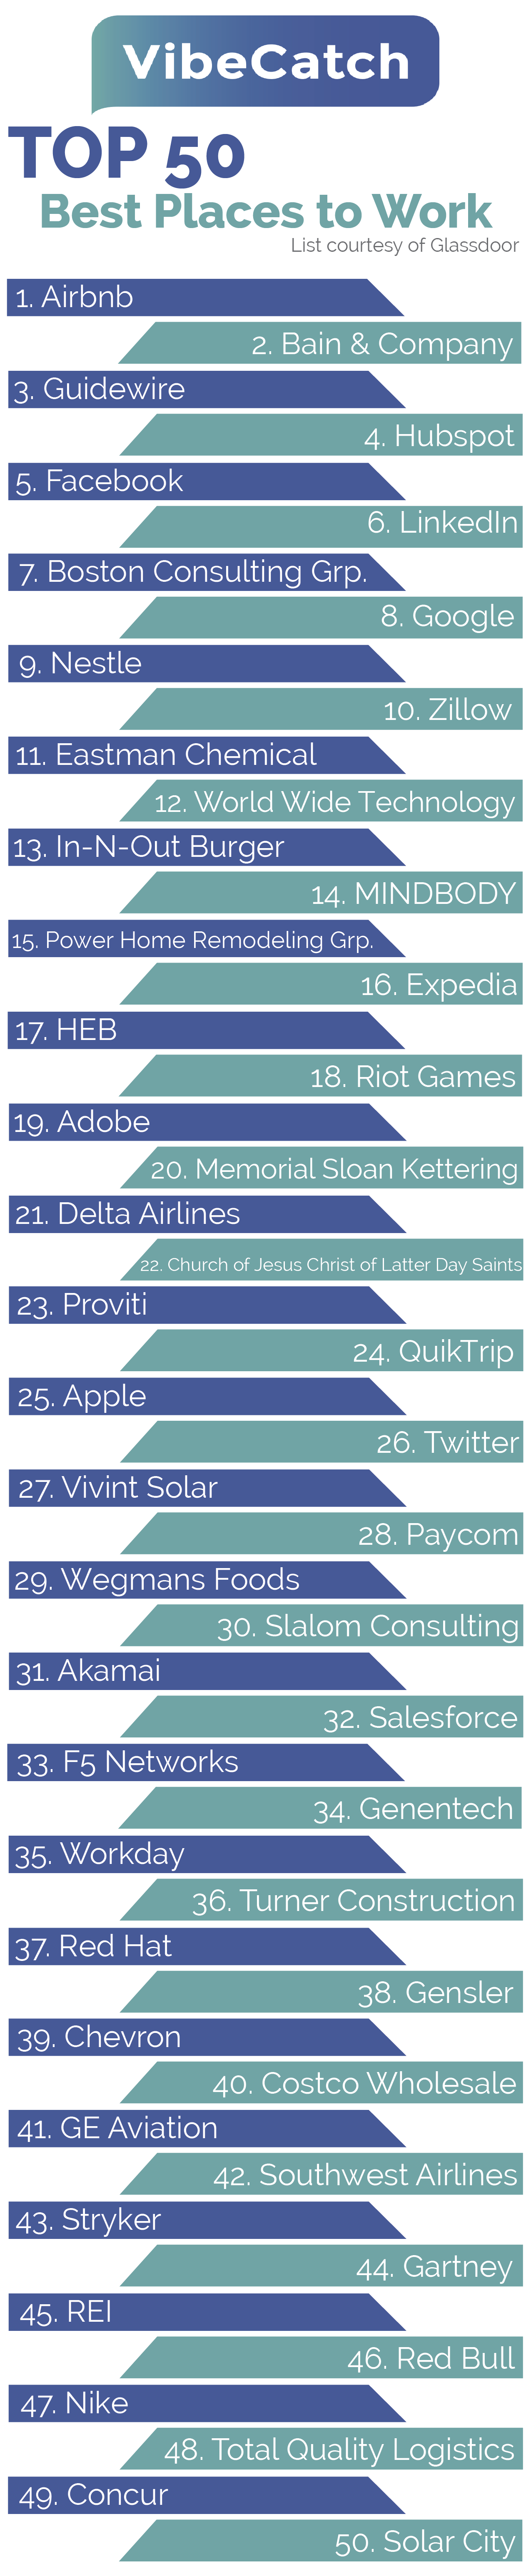 Vibecatch Top50infographic 01